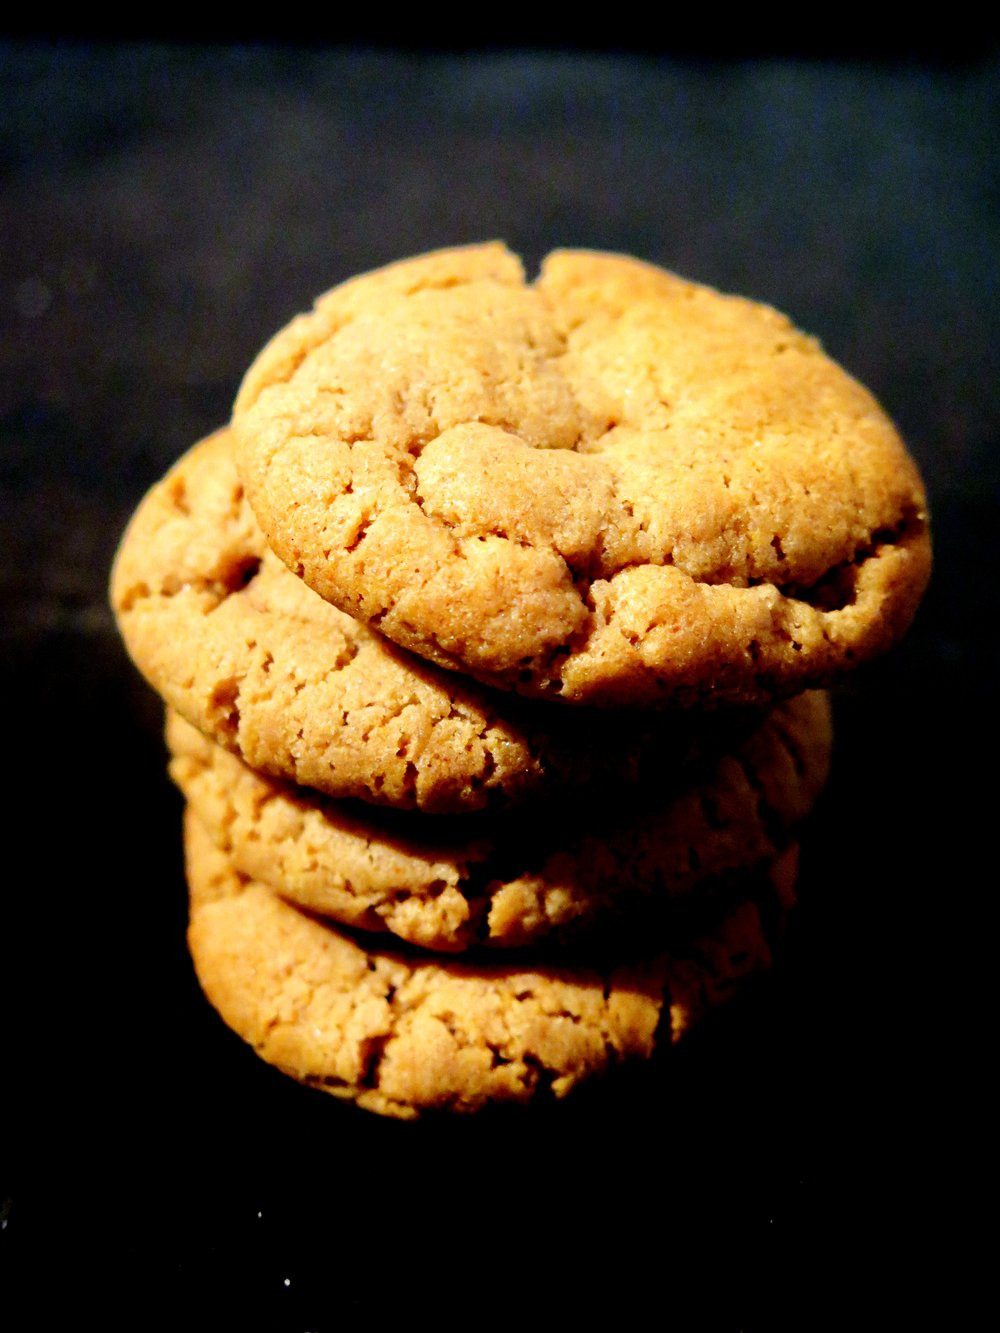 Anti-Valentine's Day Soft & Chewy Hot Spiced Double Ginger Cookies